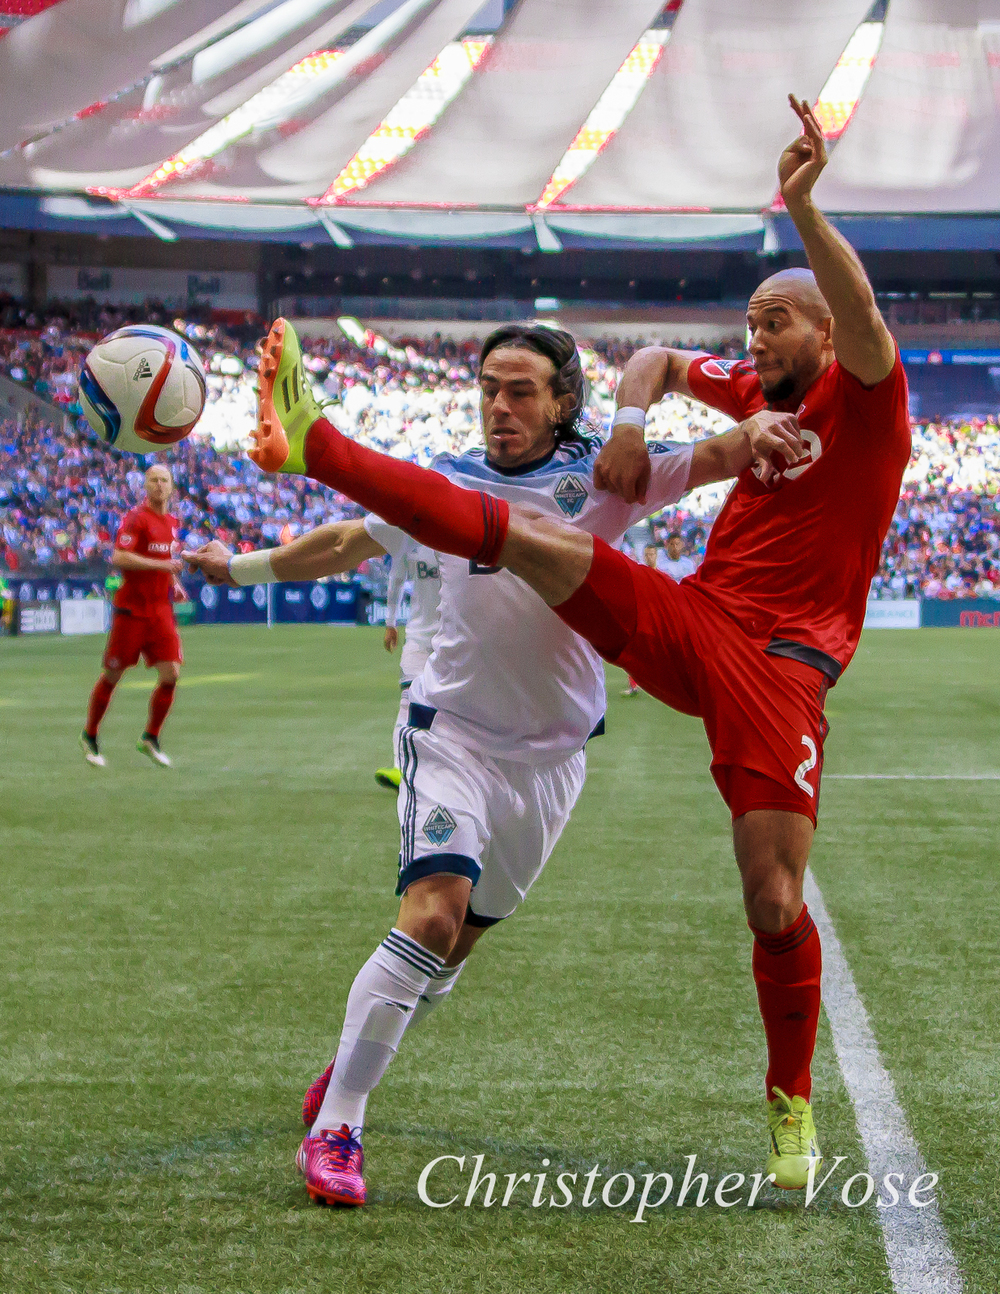 Toronto FC may not play an attractive brand of football, but for now, it's working.